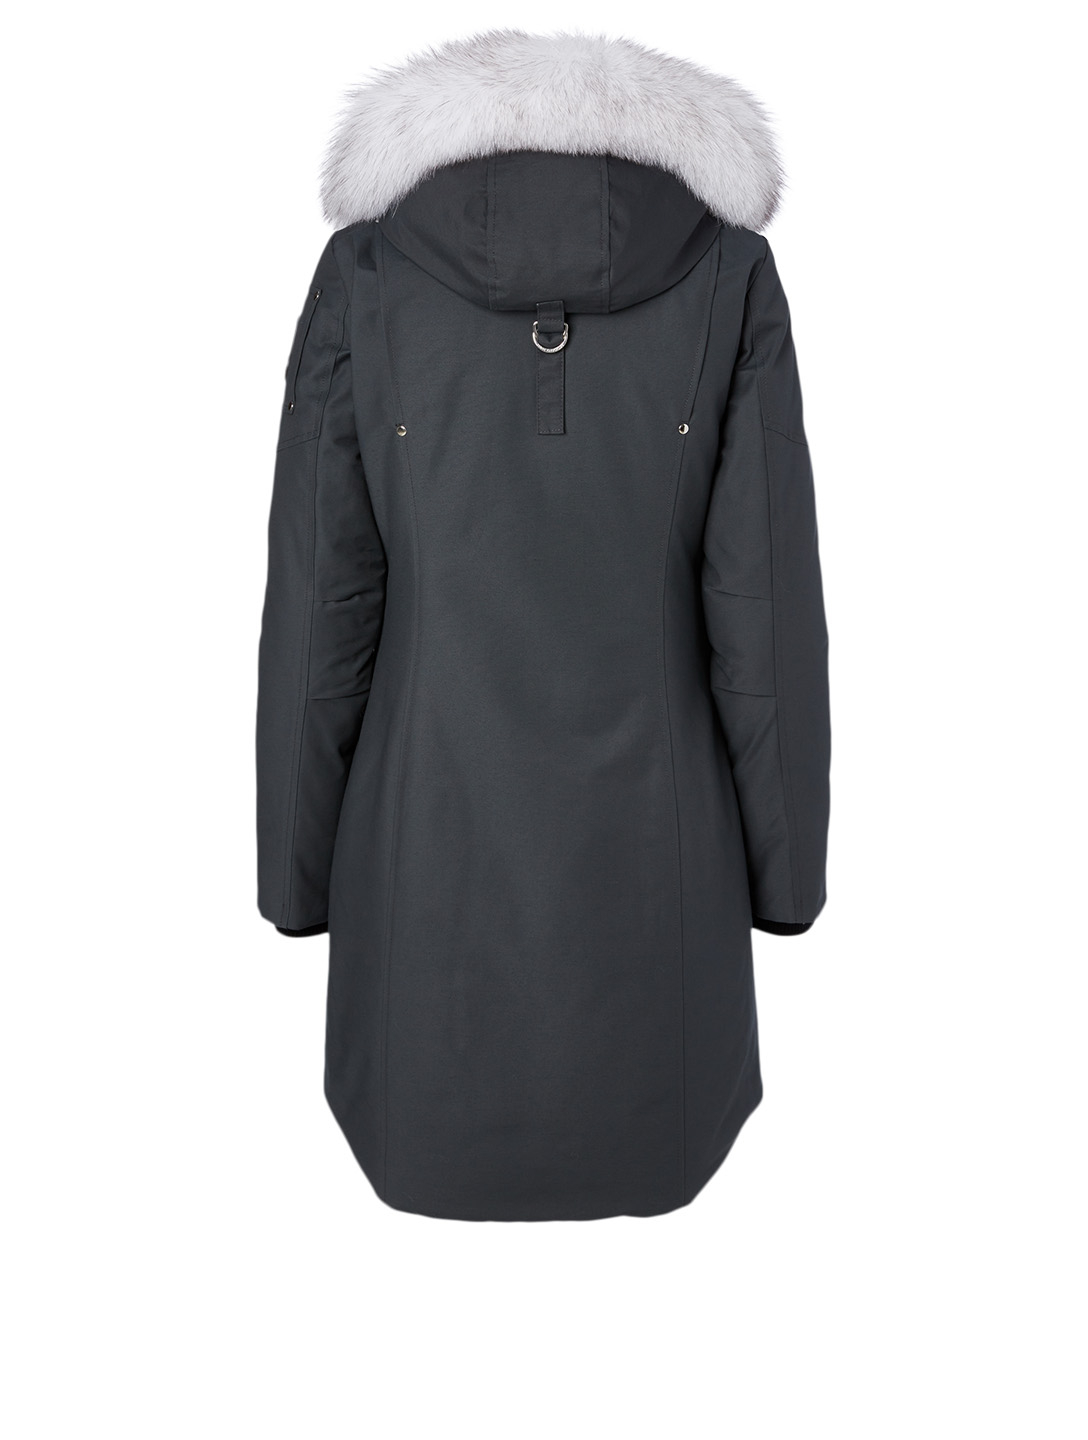 MOOSE KNUCKLES Stirling Down Parka With Fur Hood Women's Grey